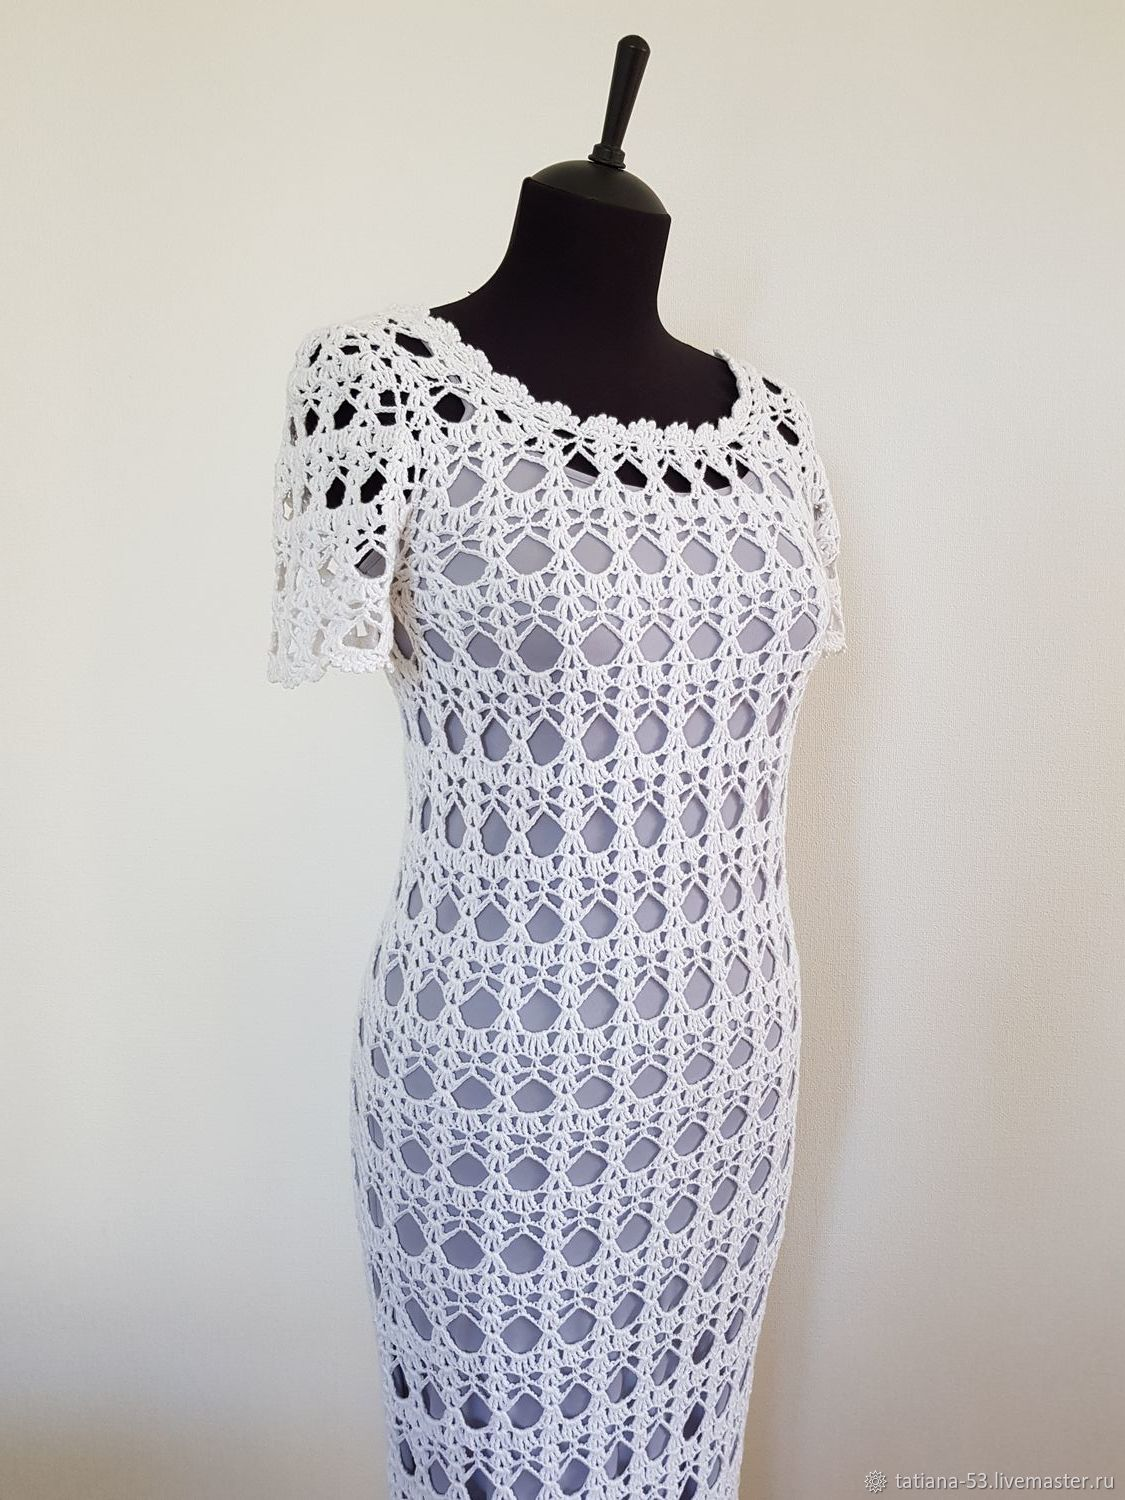 White Cotton Hand knitting Crocheted Summer Dress, Dresses, Moscow,  Фото №1